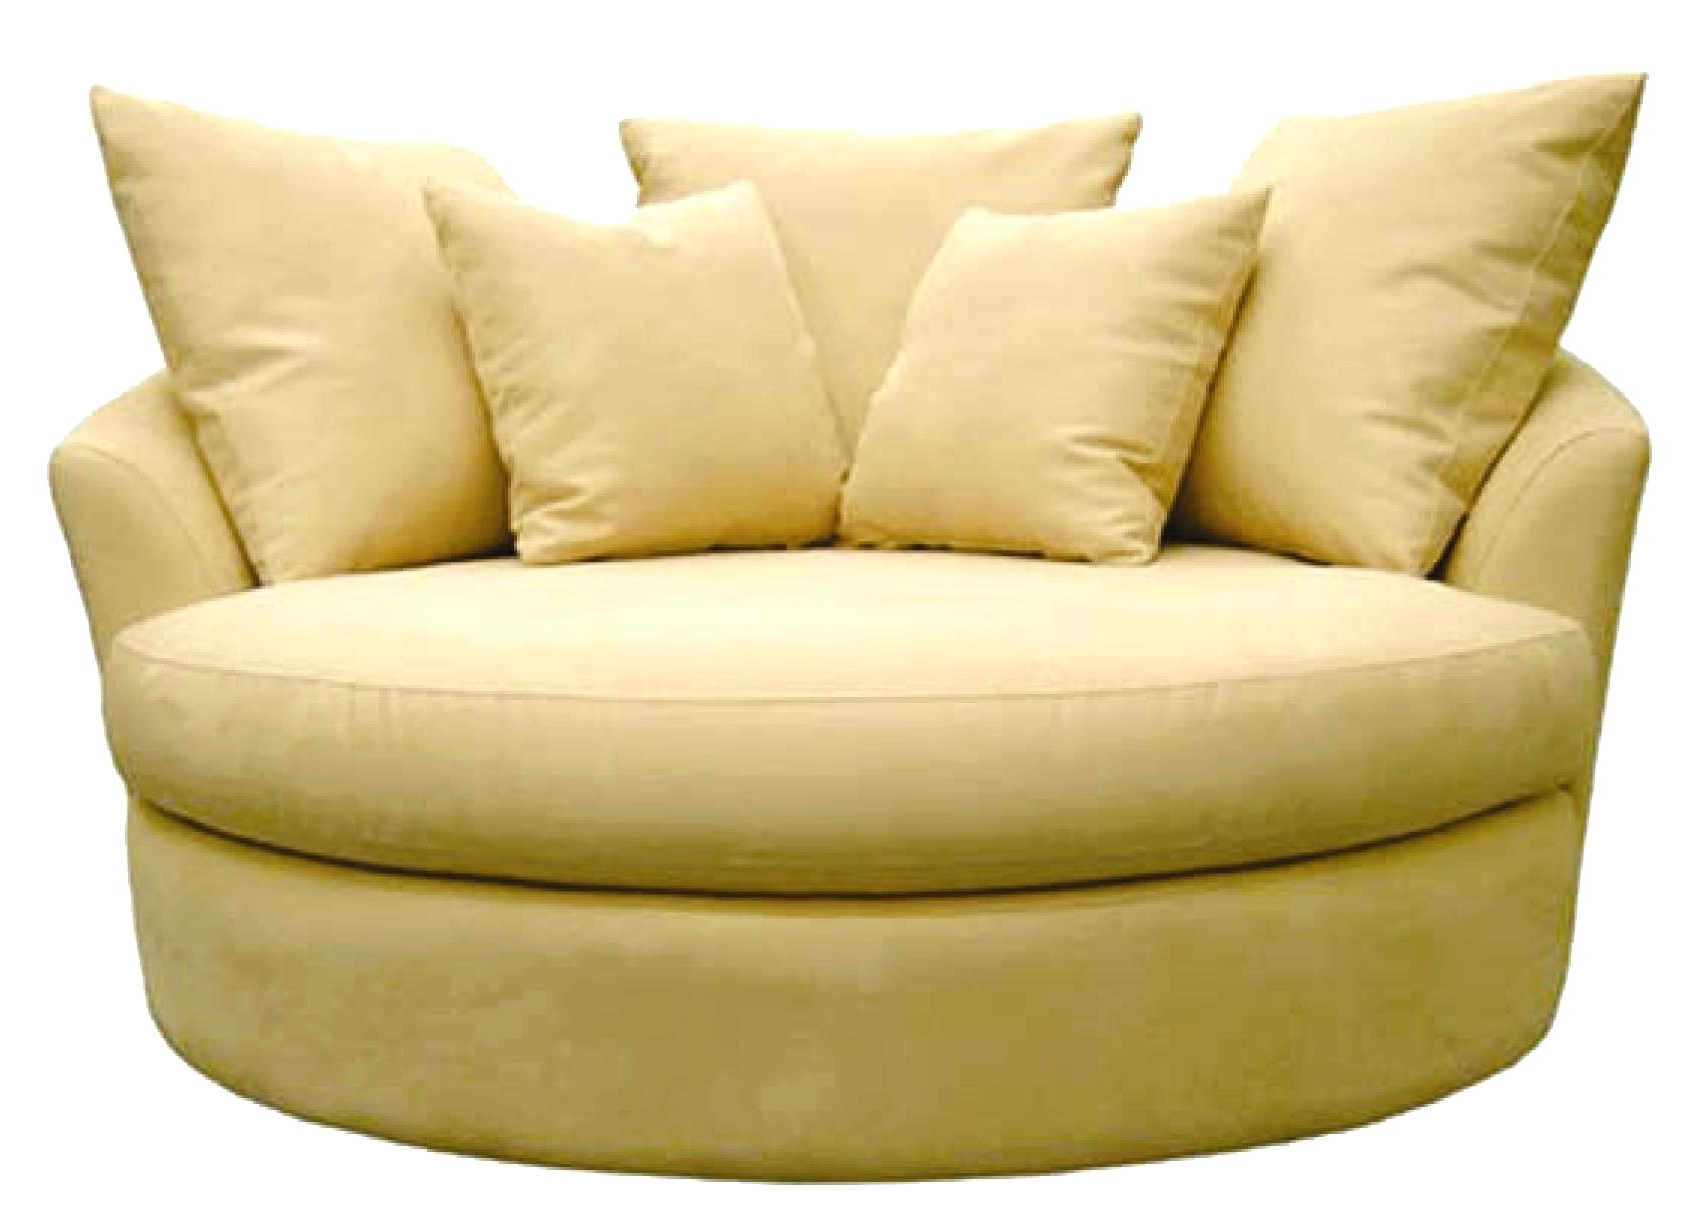 Engrossing Swivel Chairs Living Room Round Sofa Chair Living Room Intended For Popular Round Sofa Chair Living Room Furniture (Gallery 15 of 20)